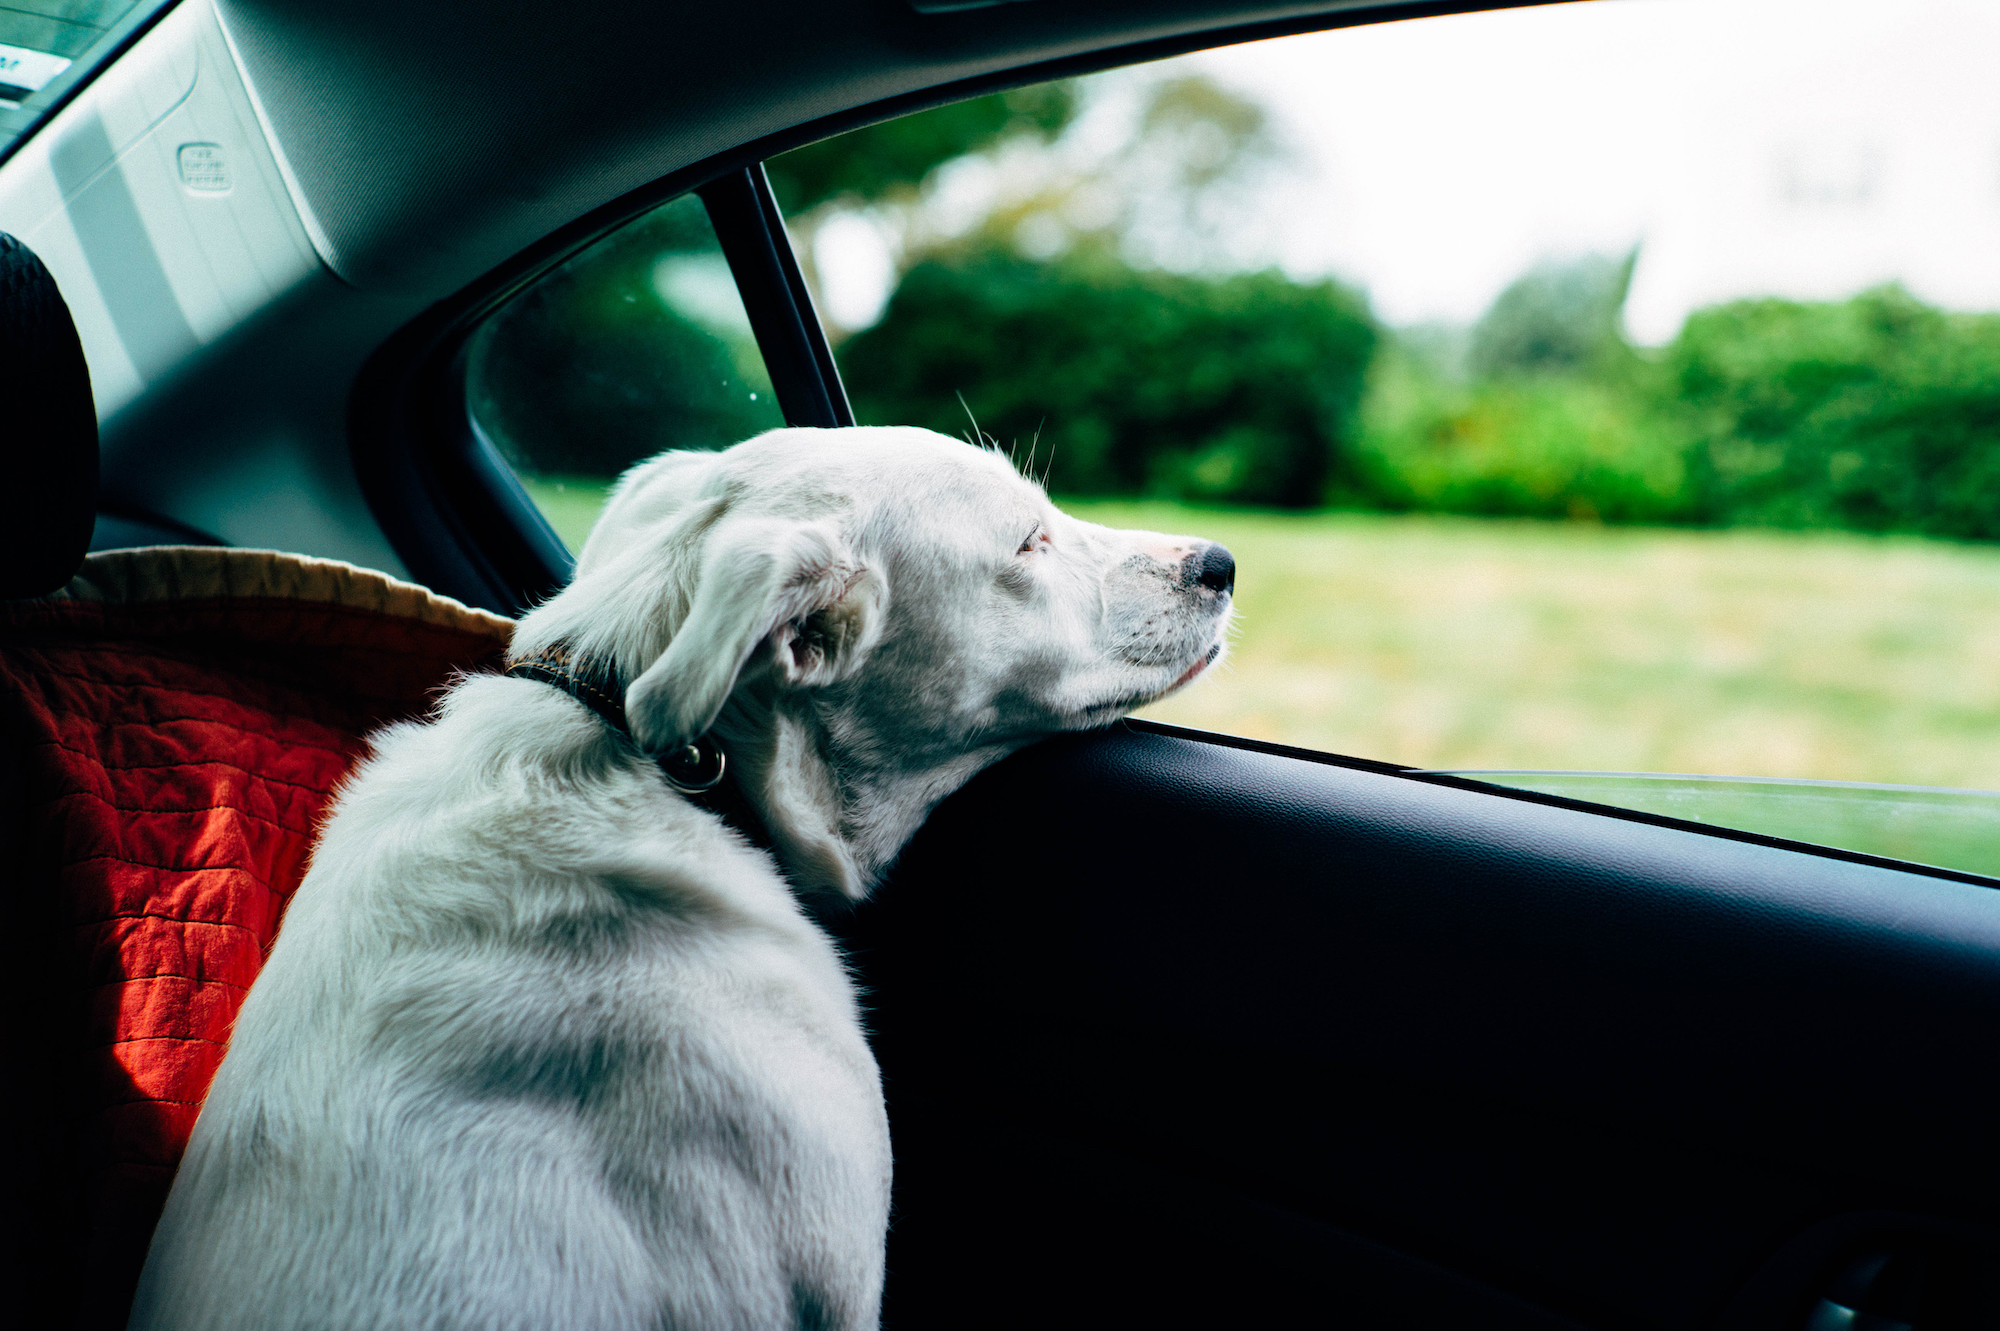 Canva - Dog in car